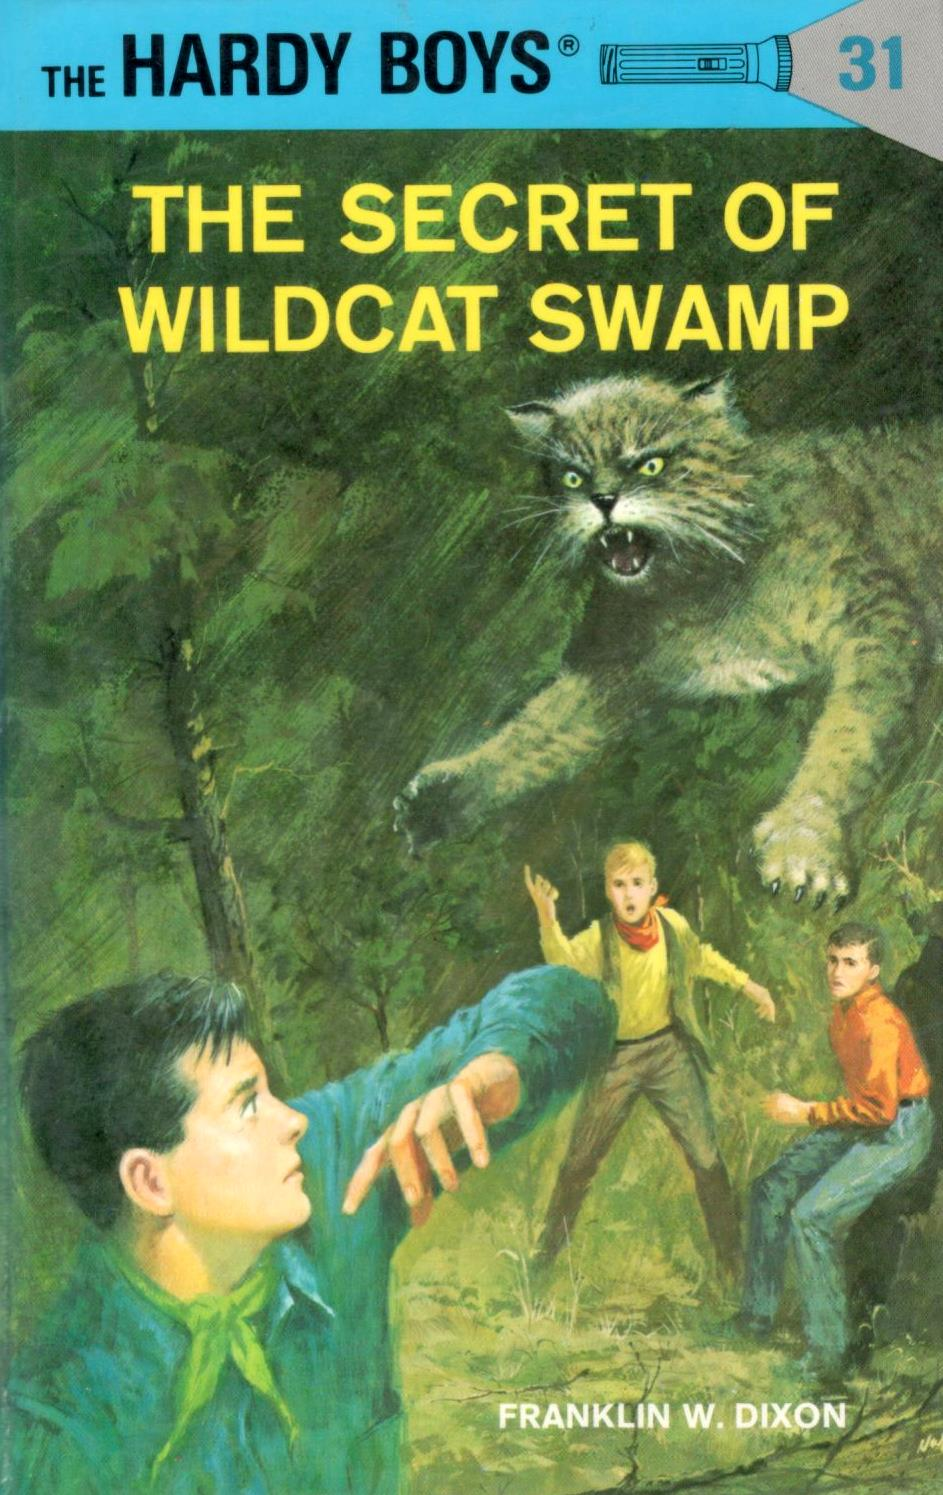 The Secret of Wildcat Swamp (The Hardy Boys, #31)